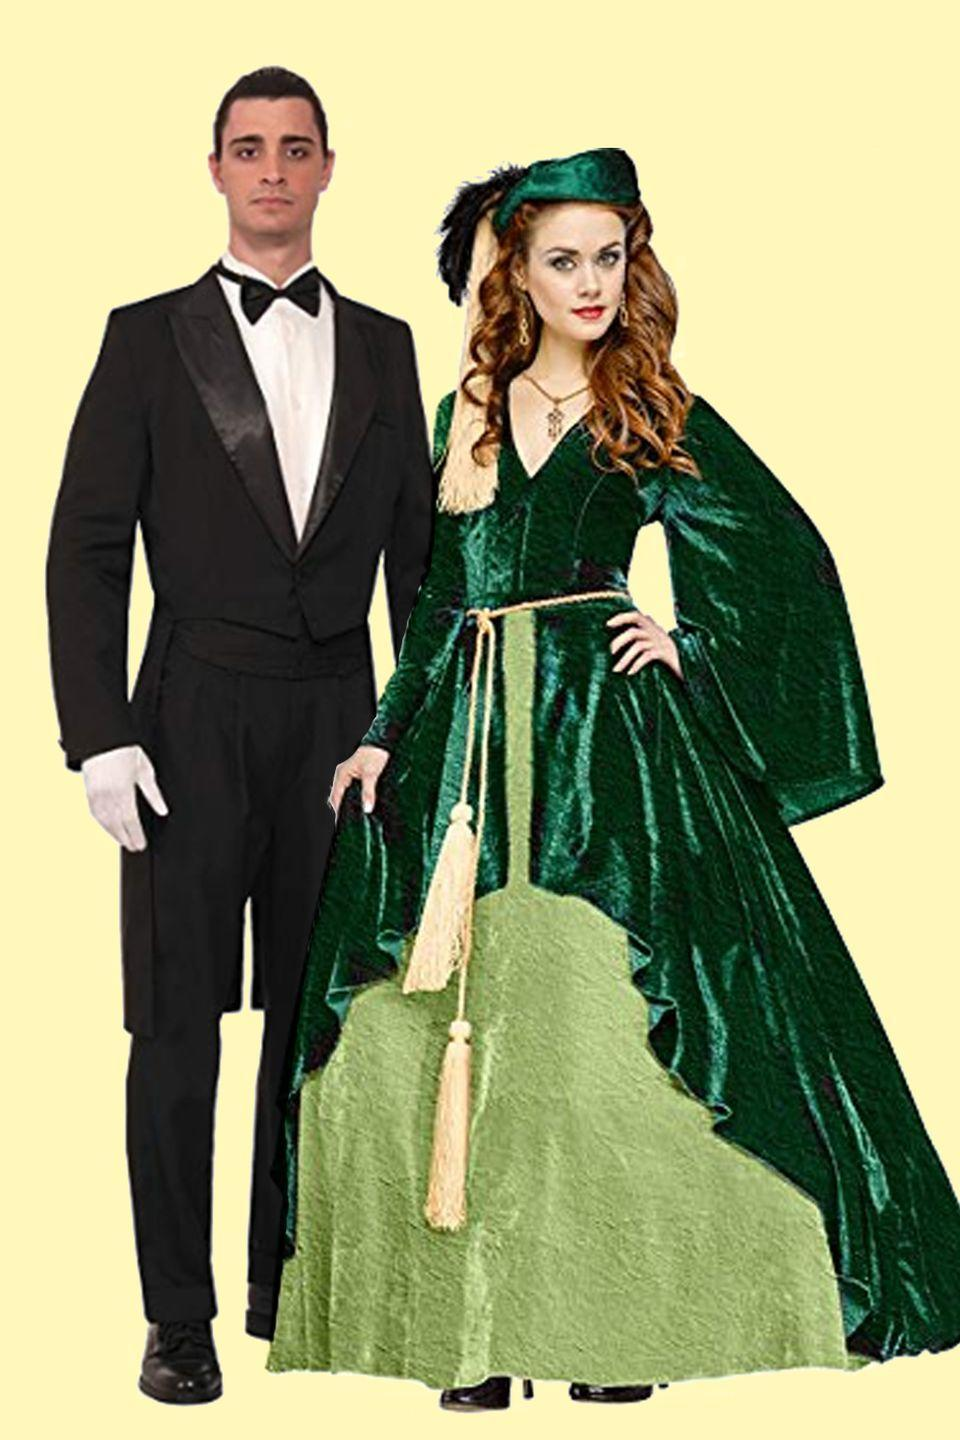 """<p>Dressing up as Vivien Leigh from <em><a href=""""https://www.amazon.com/Gone-Wind-Clark-Gable/dp/B002W7DSLW/?tag=syn-yahoo-20&ascsubtag=%5Bartid%7C10055.g.2625%5Bsrc%7Cyahoo-us"""" rel=""""nofollow noopener"""" target=""""_blank"""" data-ylk=""""slk:Gone With The Wind"""" class=""""link rapid-noclick-resp"""">Gone With The Wind</a></em> gives you the perfect reason to bust out your feather boat <em>and</em> strut around in gorgeous retro curls.</p><p><a class=""""link rapid-noclick-resp"""" href=""""https://www.amazon.com/Very-Last-Shop-Scarlett-Custom-Made/dp/B07BQKTLHC/?tag=syn-yahoo-20&ascsubtag=%5Bartid%7C10055.g.2625%5Bsrc%7Cyahoo-us"""" rel=""""nofollow noopener"""" target=""""_blank"""" data-ylk=""""slk:SHOP SCARLETT O'HARA COSTUME"""">SHOP SCARLETT O'HARA COSTUME</a></p><p> <a class=""""link rapid-noclick-resp"""" href=""""https://www.amazon.com/Forum-Novelties-Vintage-Hollywood-Tailcoat/dp/B00IVV1SWE?tag=syn-yahoo-20&ascsubtag=%5Bartid%7C10055.g.2625%5Bsrc%7Cyahoo-us"""" rel=""""nofollow noopener"""" target=""""_blank"""" data-ylk=""""slk:SHOP RHETT BUTLER COSTUME"""">SHOP RHETT BUTLER COSTUME</a></p>"""